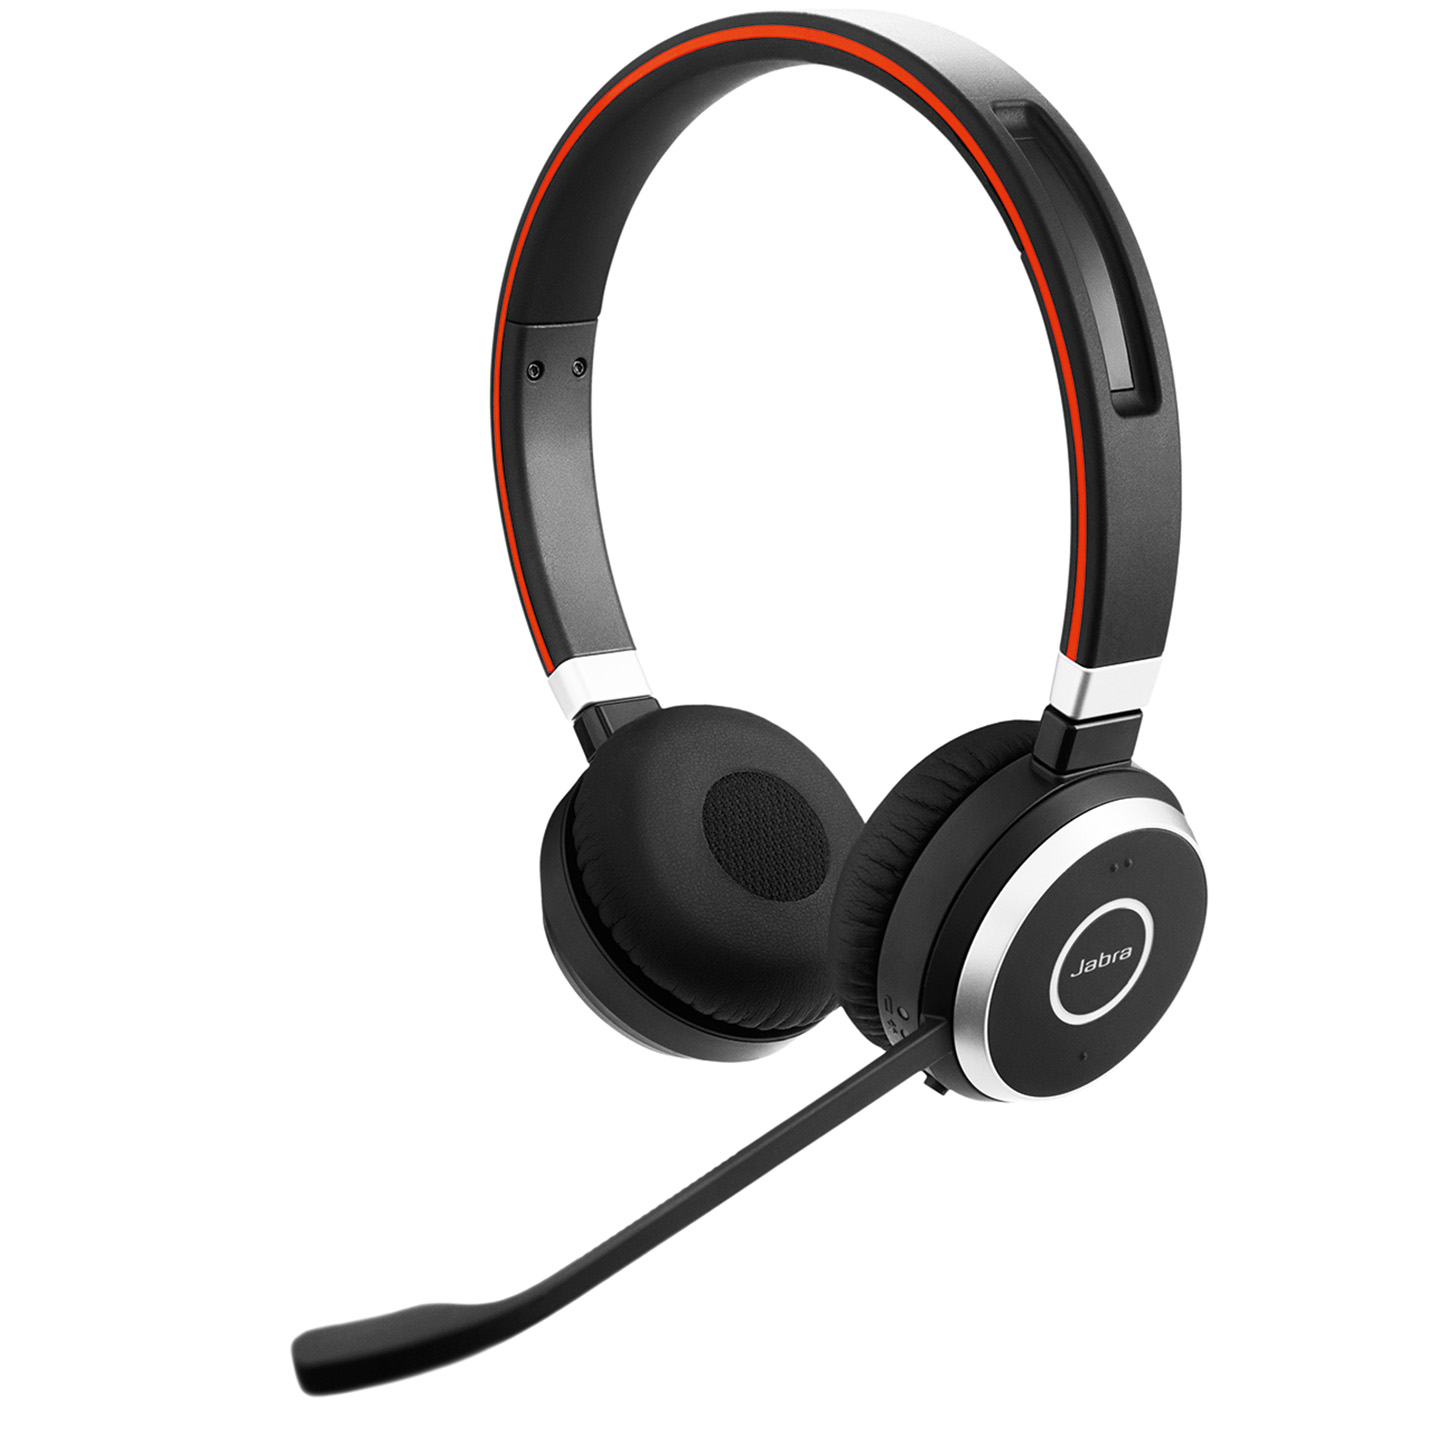 Jabra Evolve 65 Review | Thoughts From a Bot Named Flinch